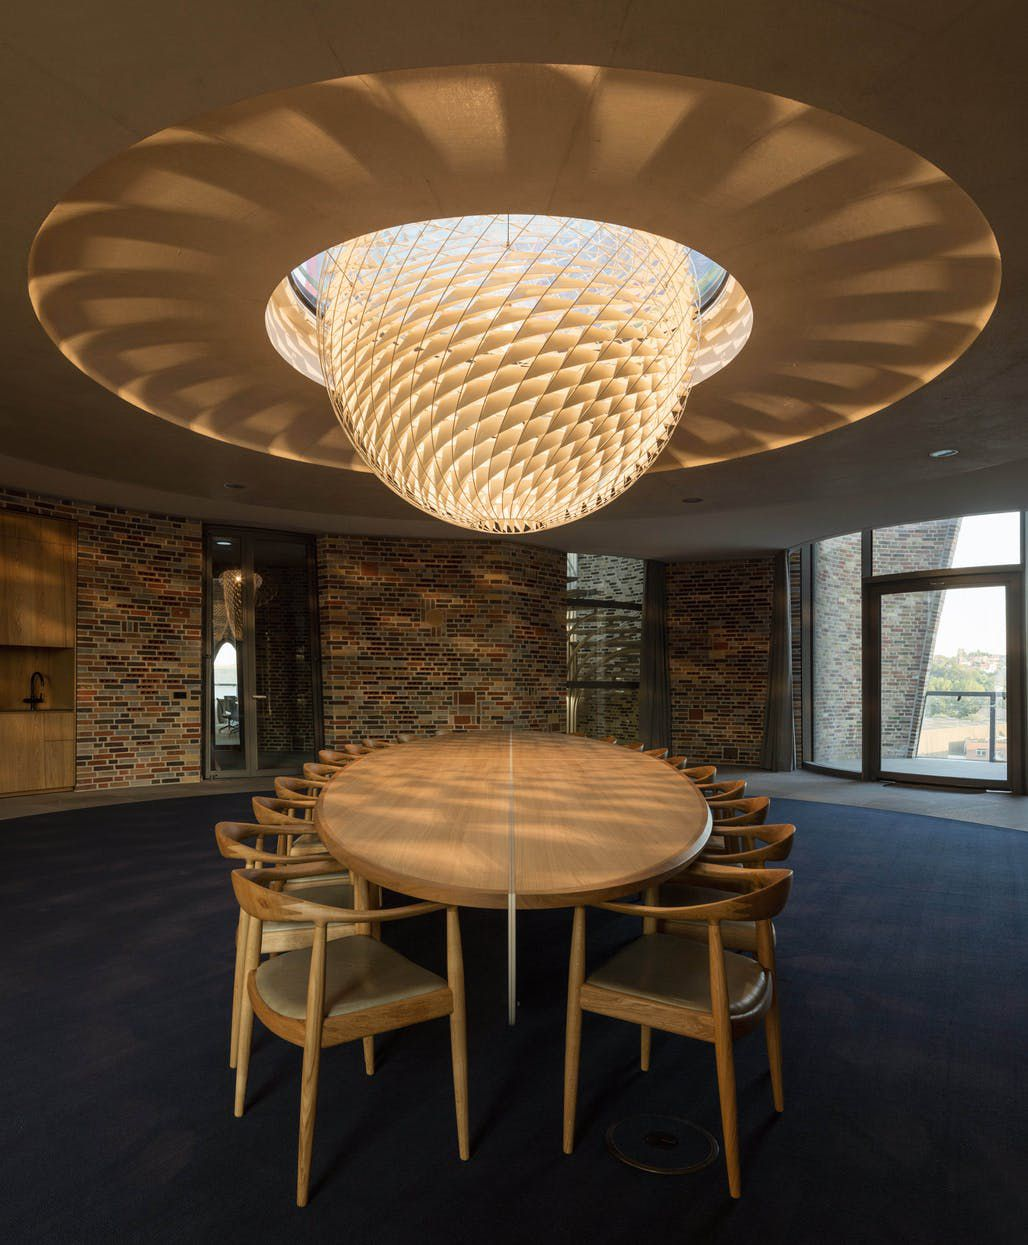 Conference room with large pendant light and table